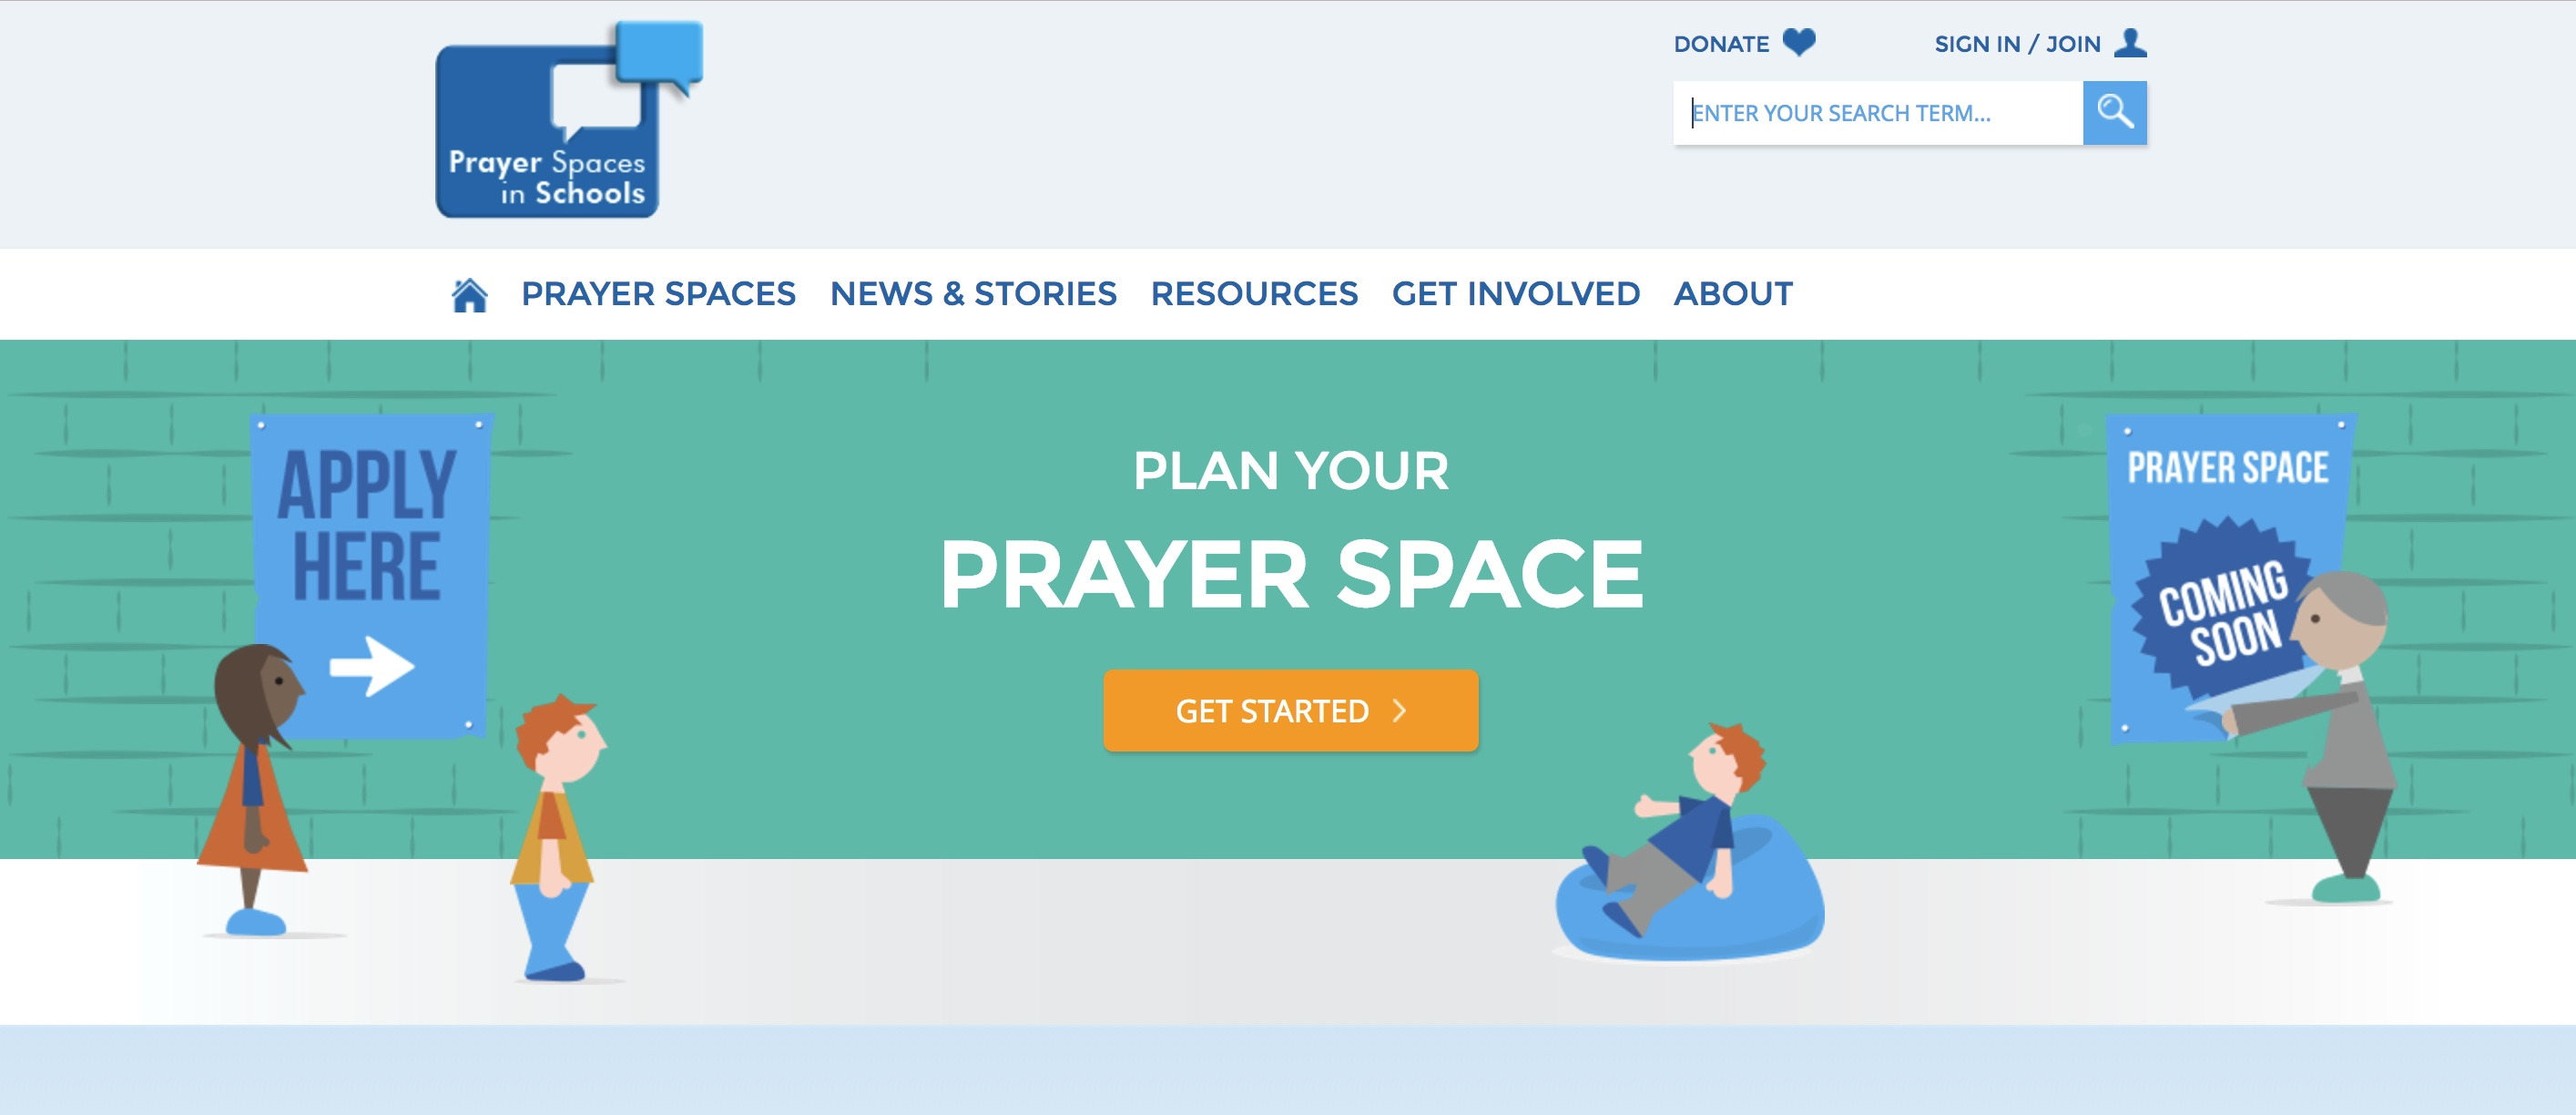 Prayer spaces in schools website